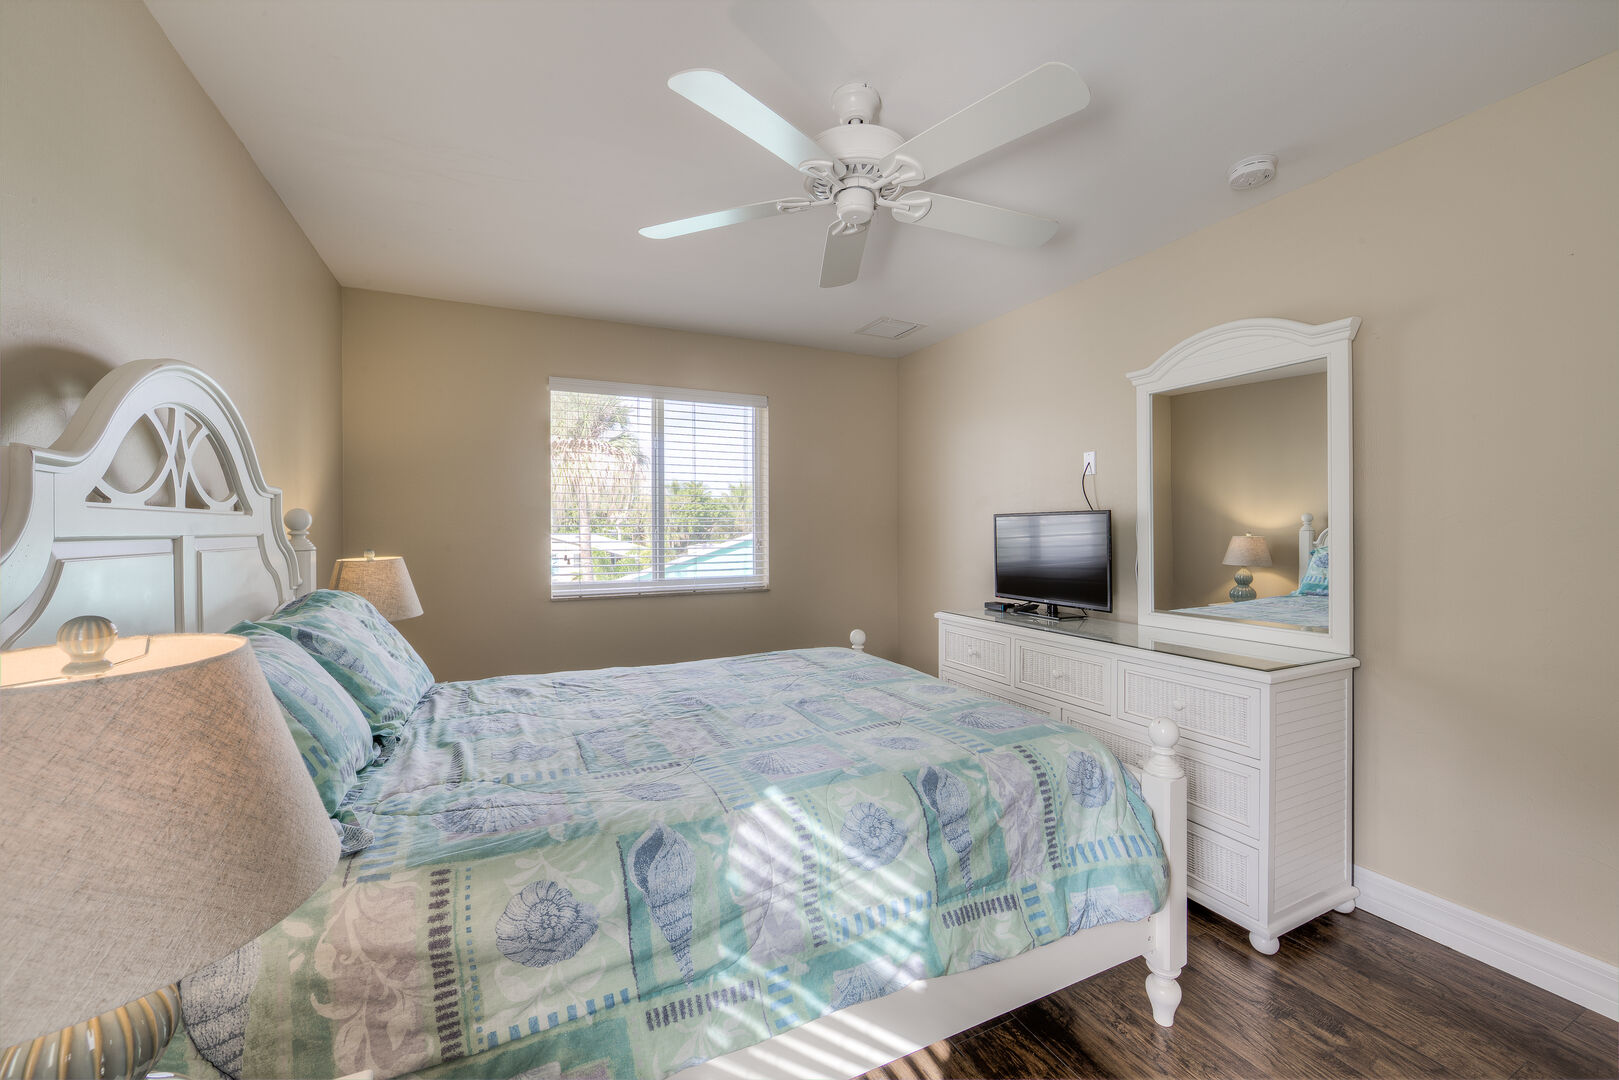 Bedroom with dresser and small TV